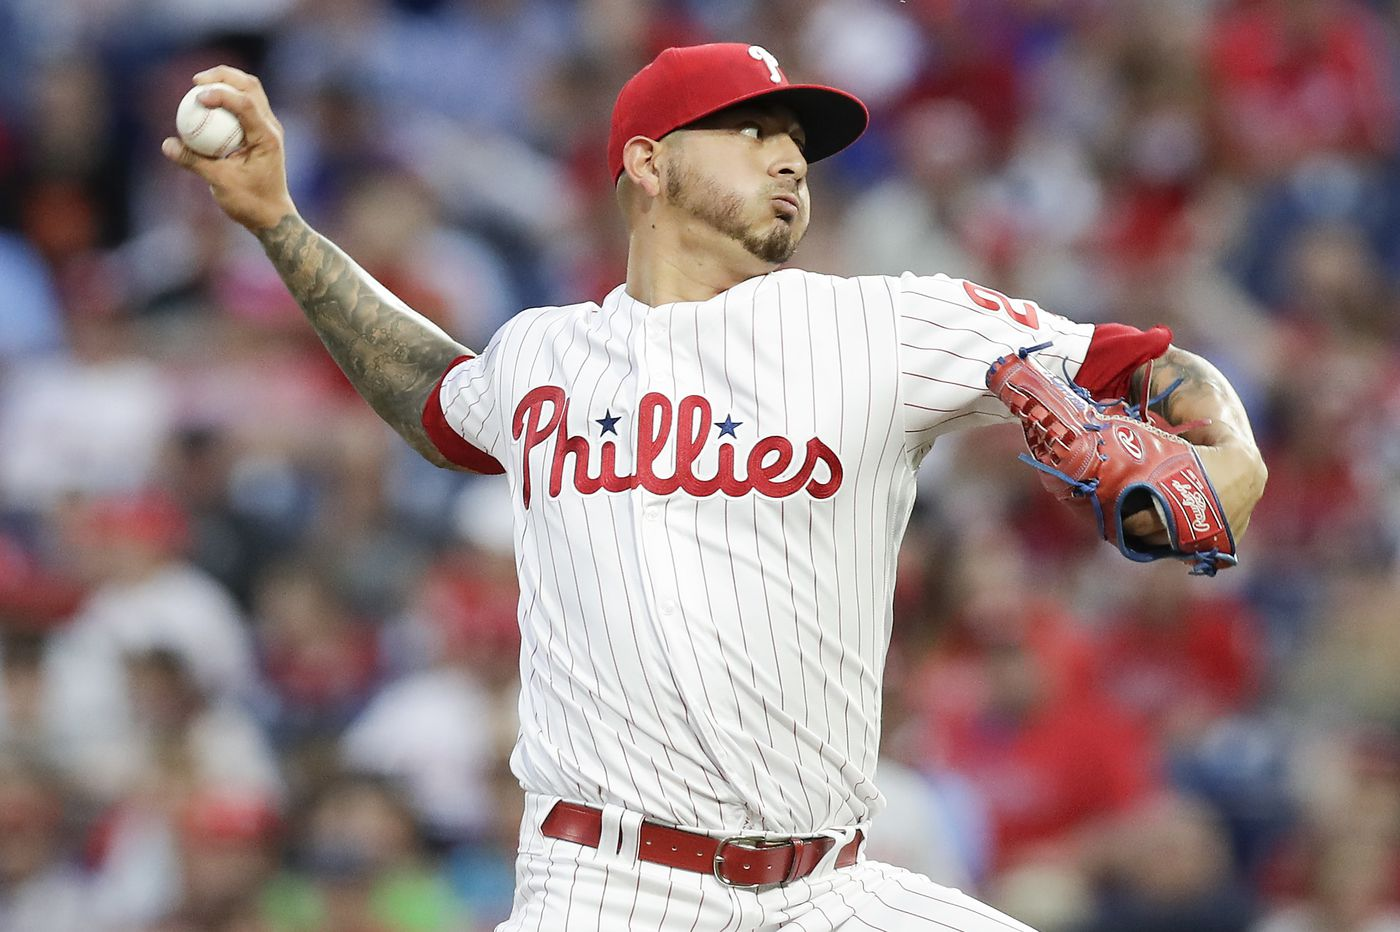 Philadelphia Phillies vs. Milwaukee Brewers, 5/25/19 MLB Predictions & Odds